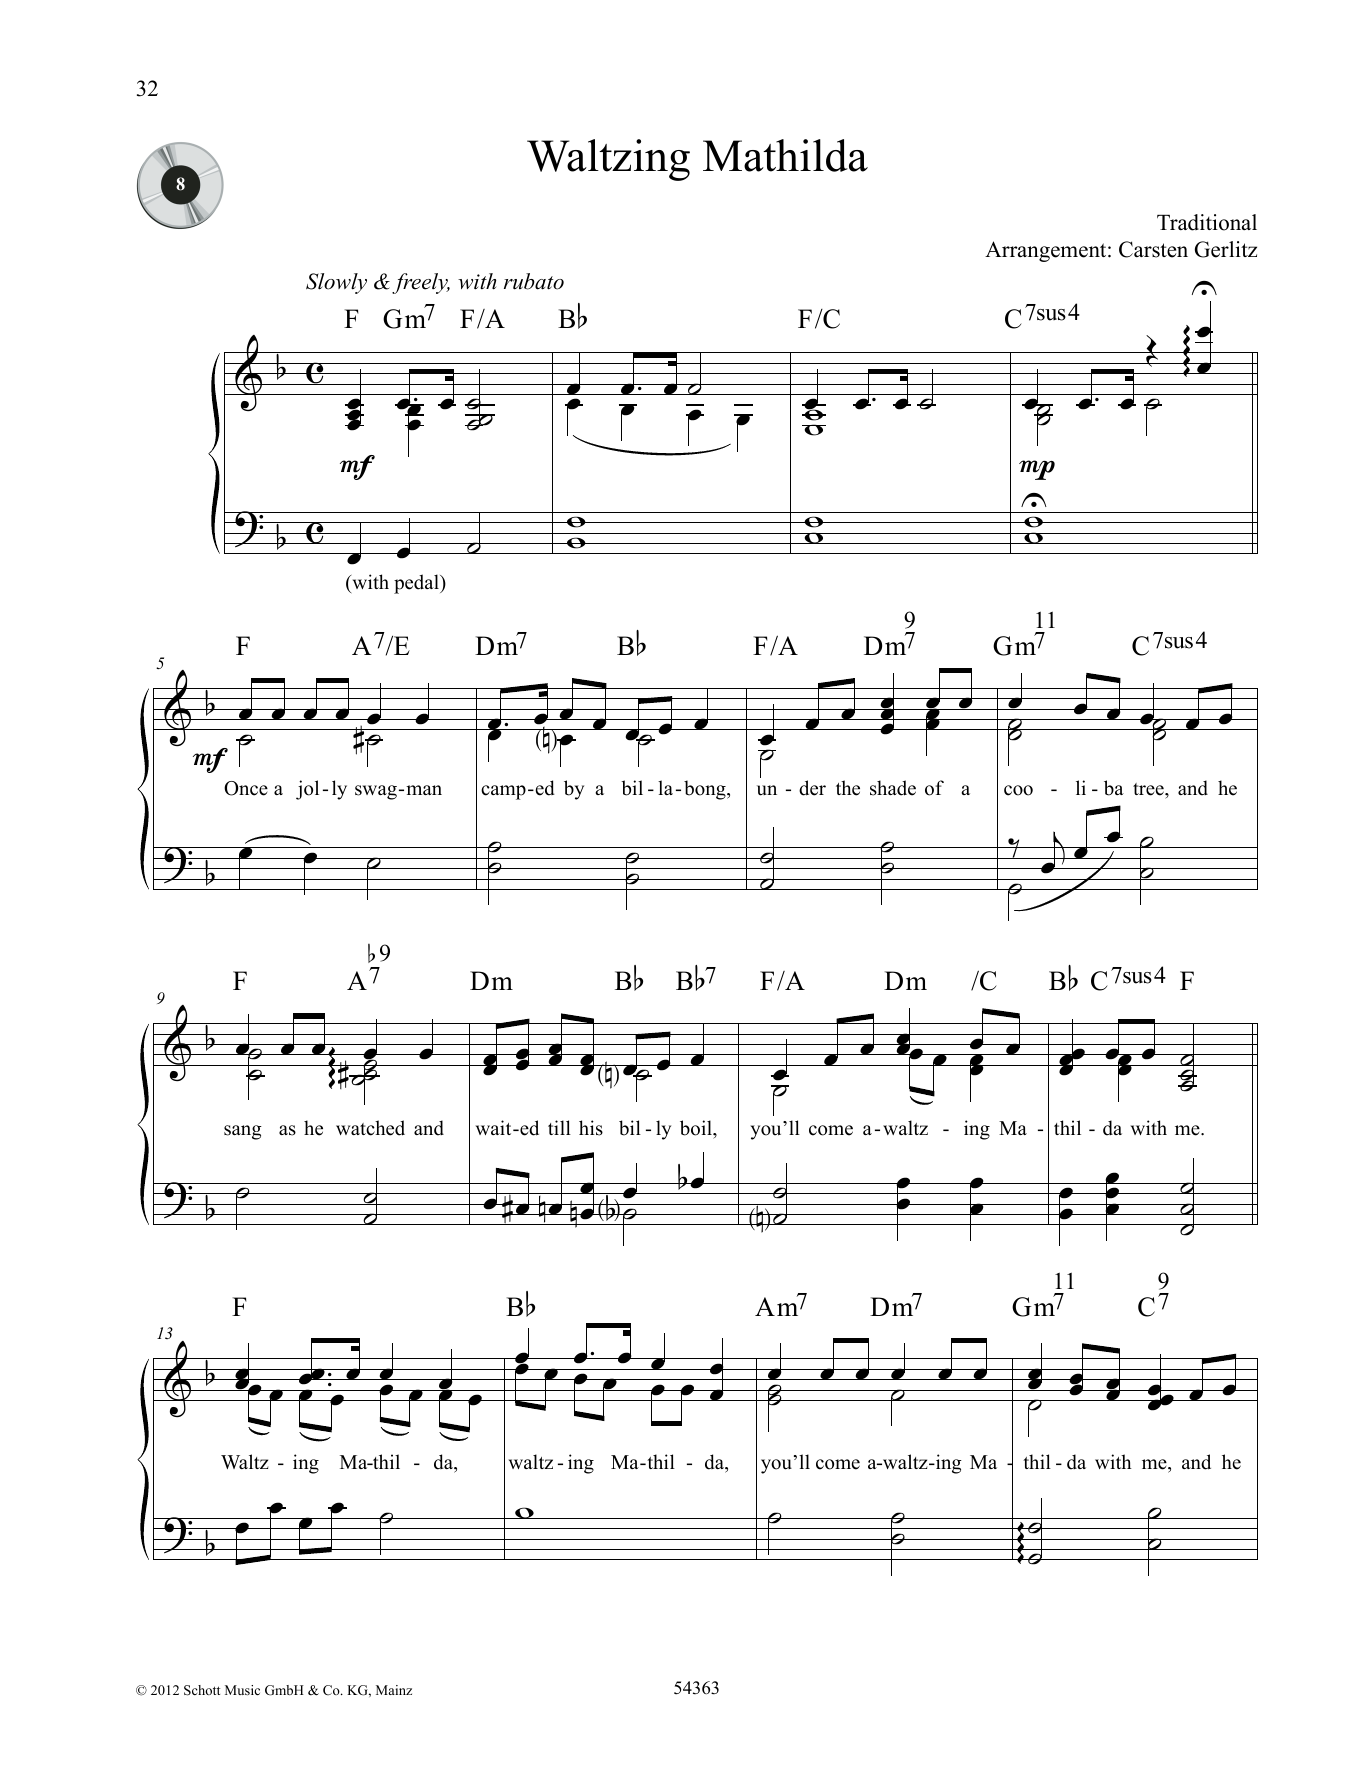 Waltzing Mathilda Sheet Music